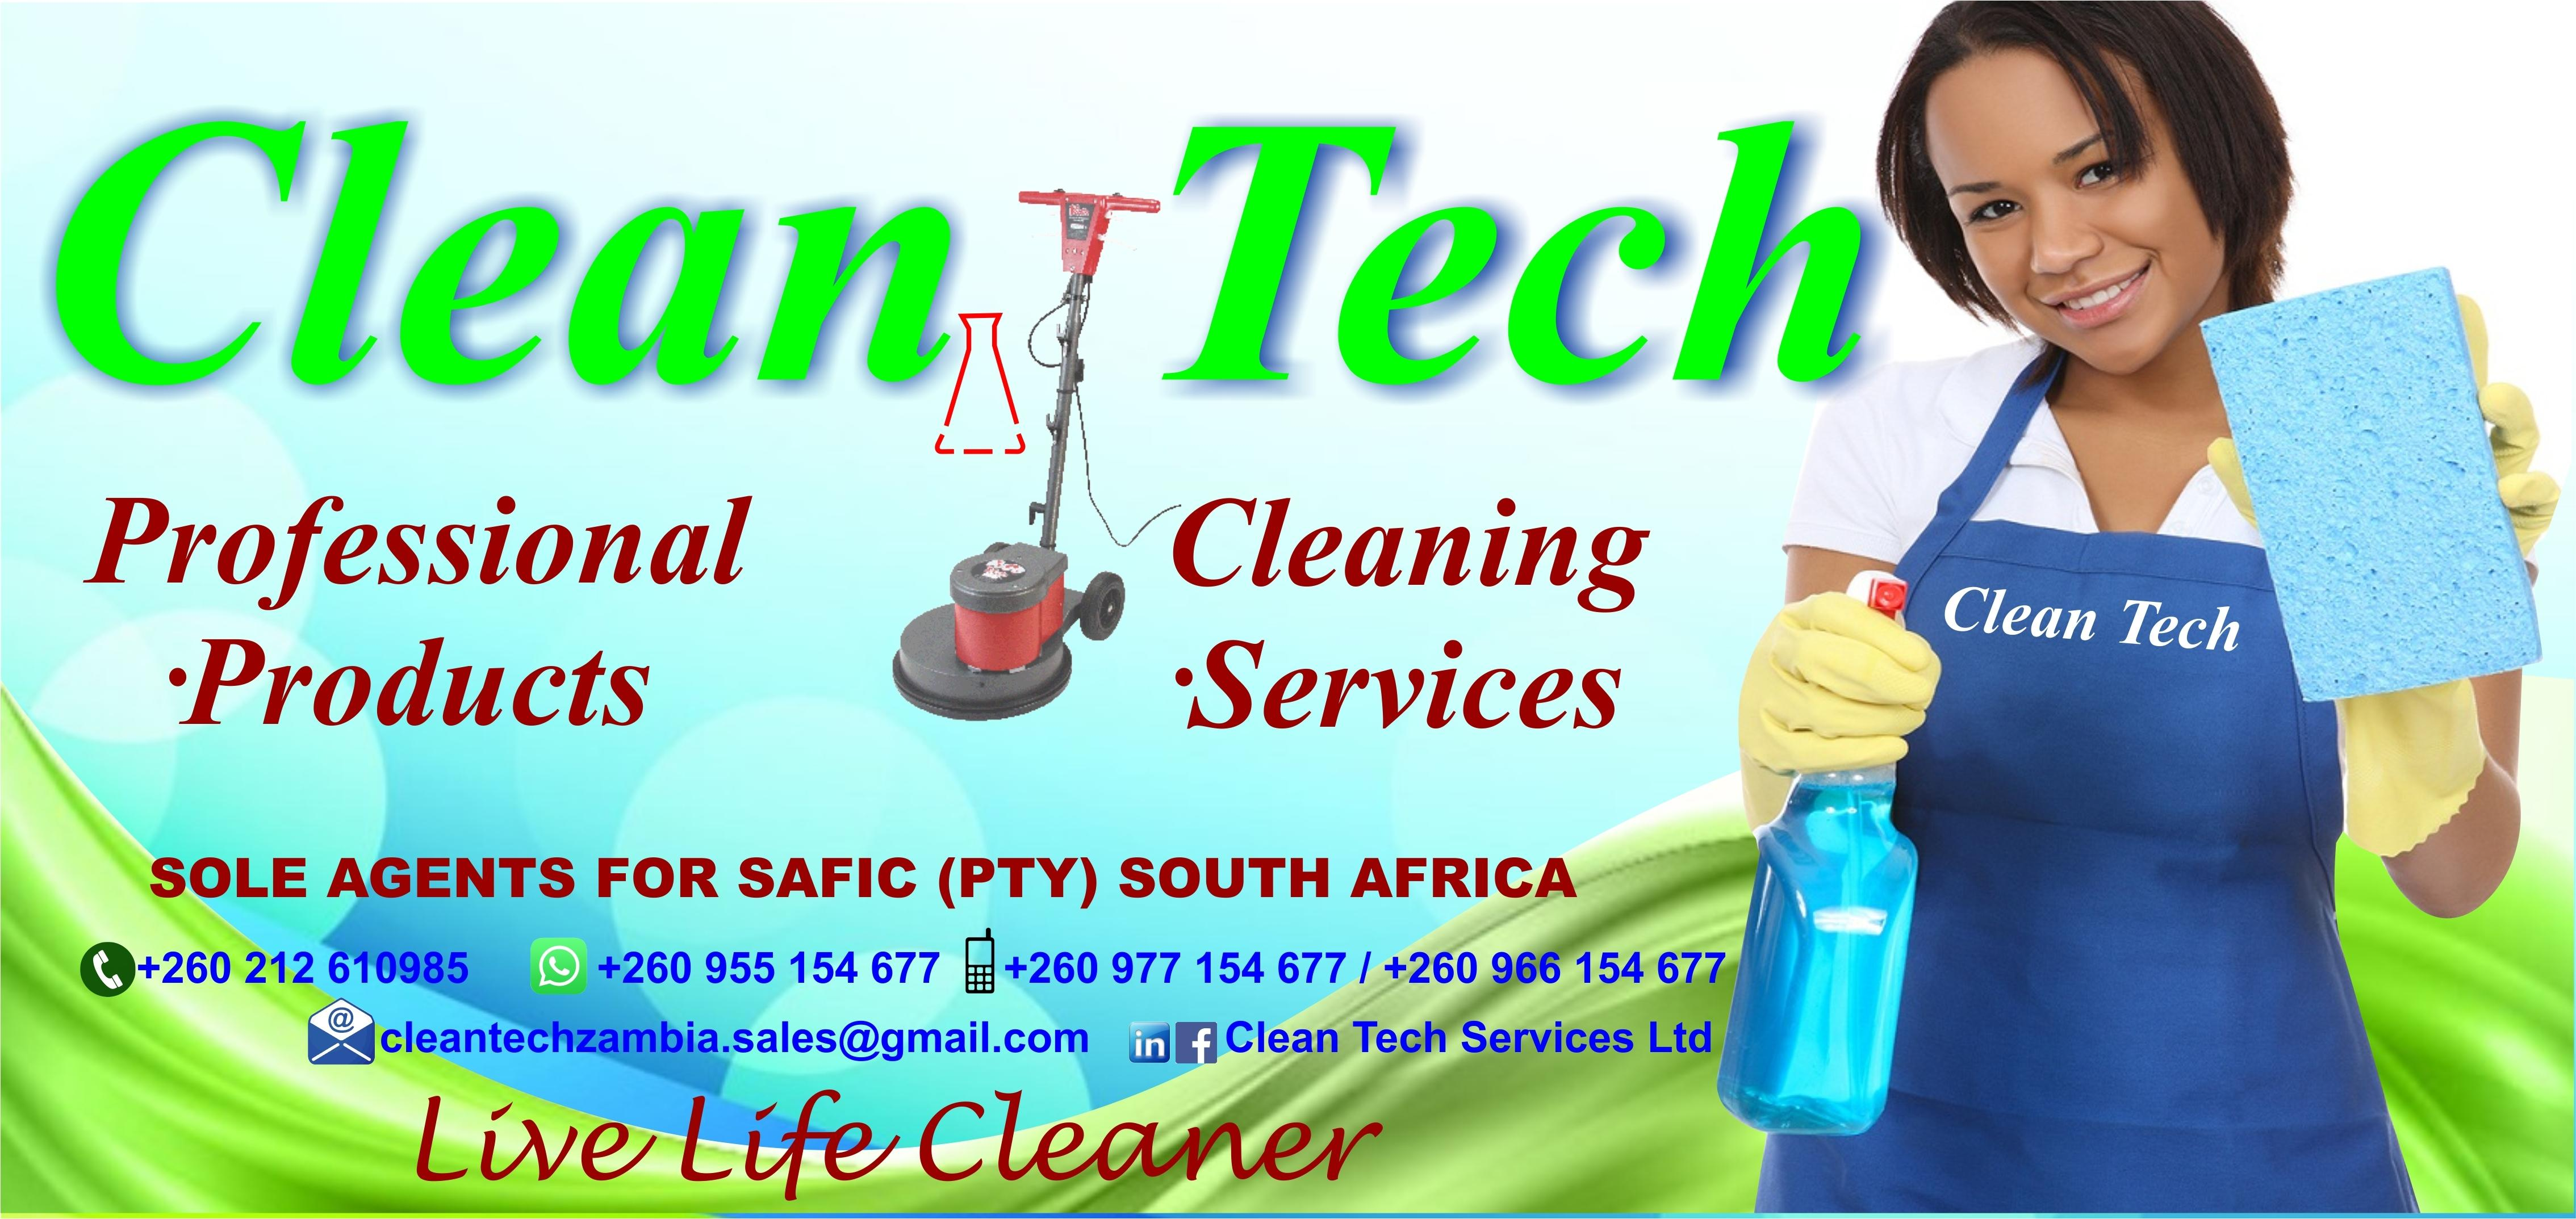 CLEANTECH ZAMBIA LTD